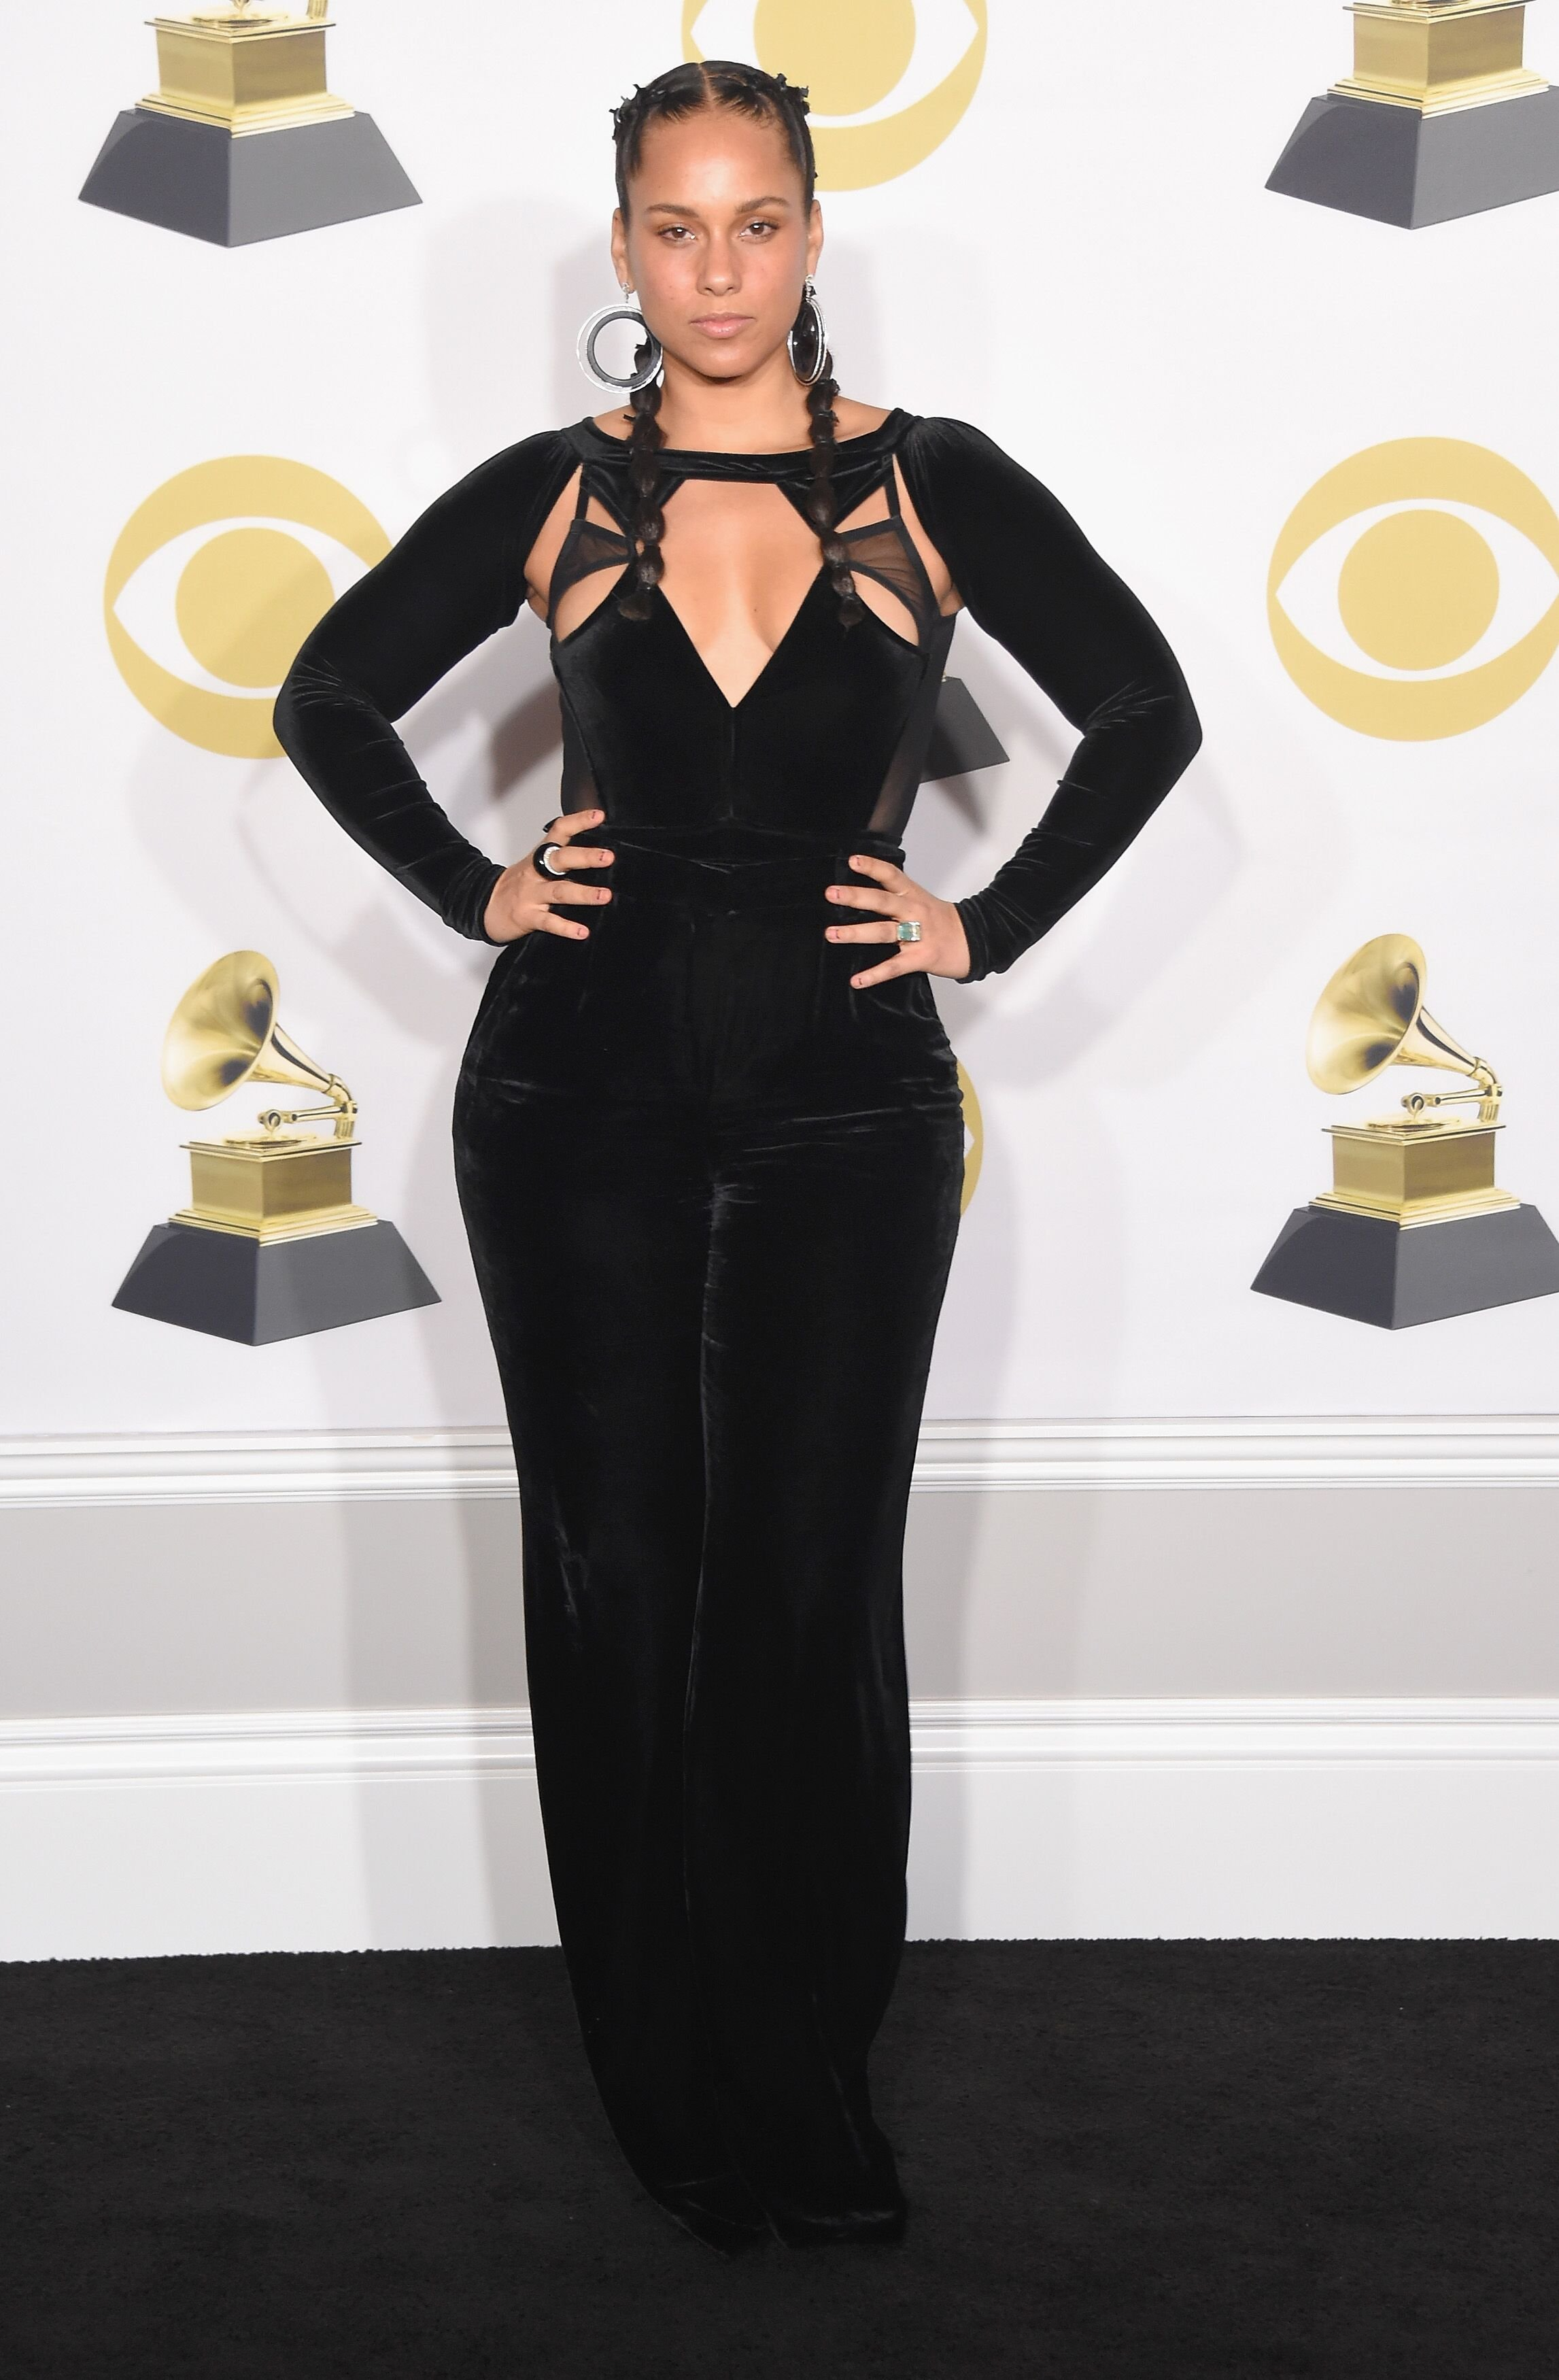 Singer/ songwriter Alicia Keys at the 2018 Grammy Awards/ Source: Getty Images